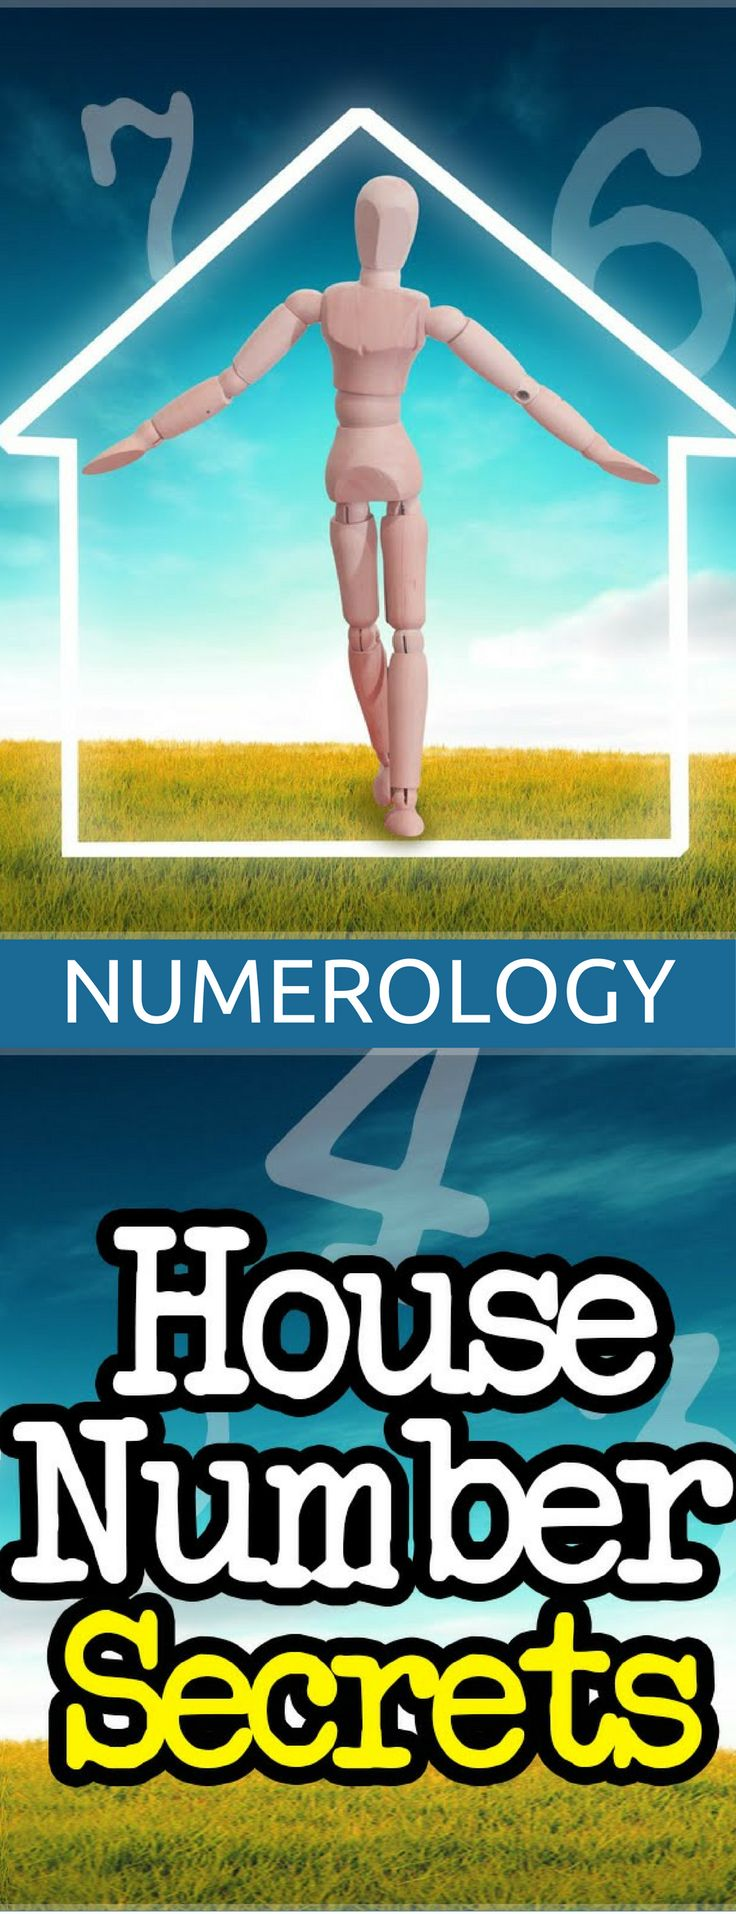 House Number Numerology http://vid.staged.com/yxit